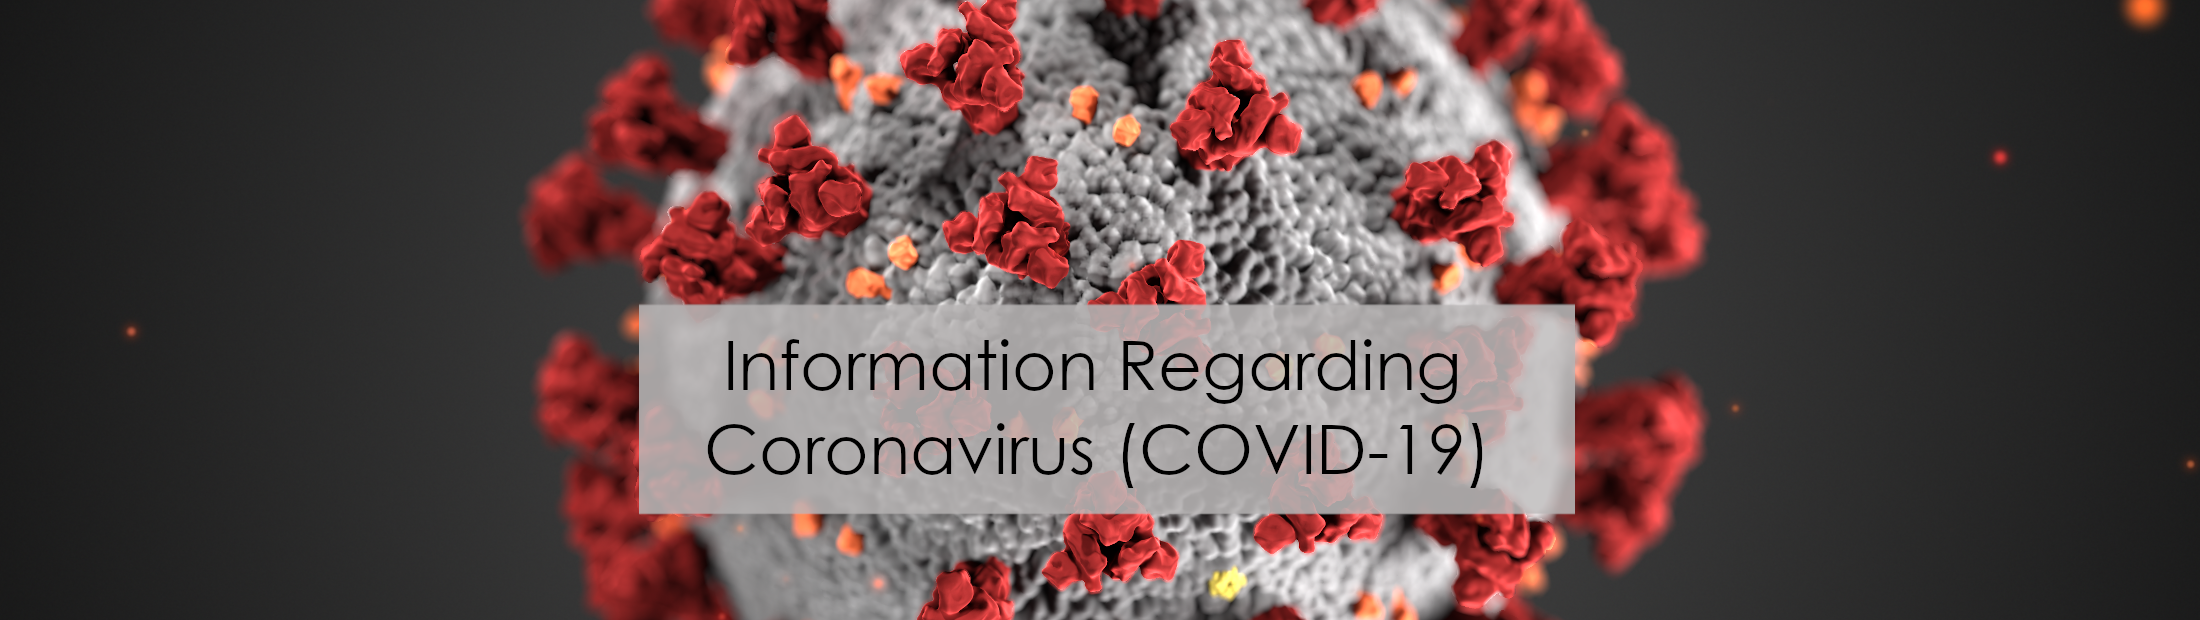 Select image to learn more about coronavirus (COVID-19). Contact Crow Wing County Public Health for information or assistance by calling 218-824-1093.